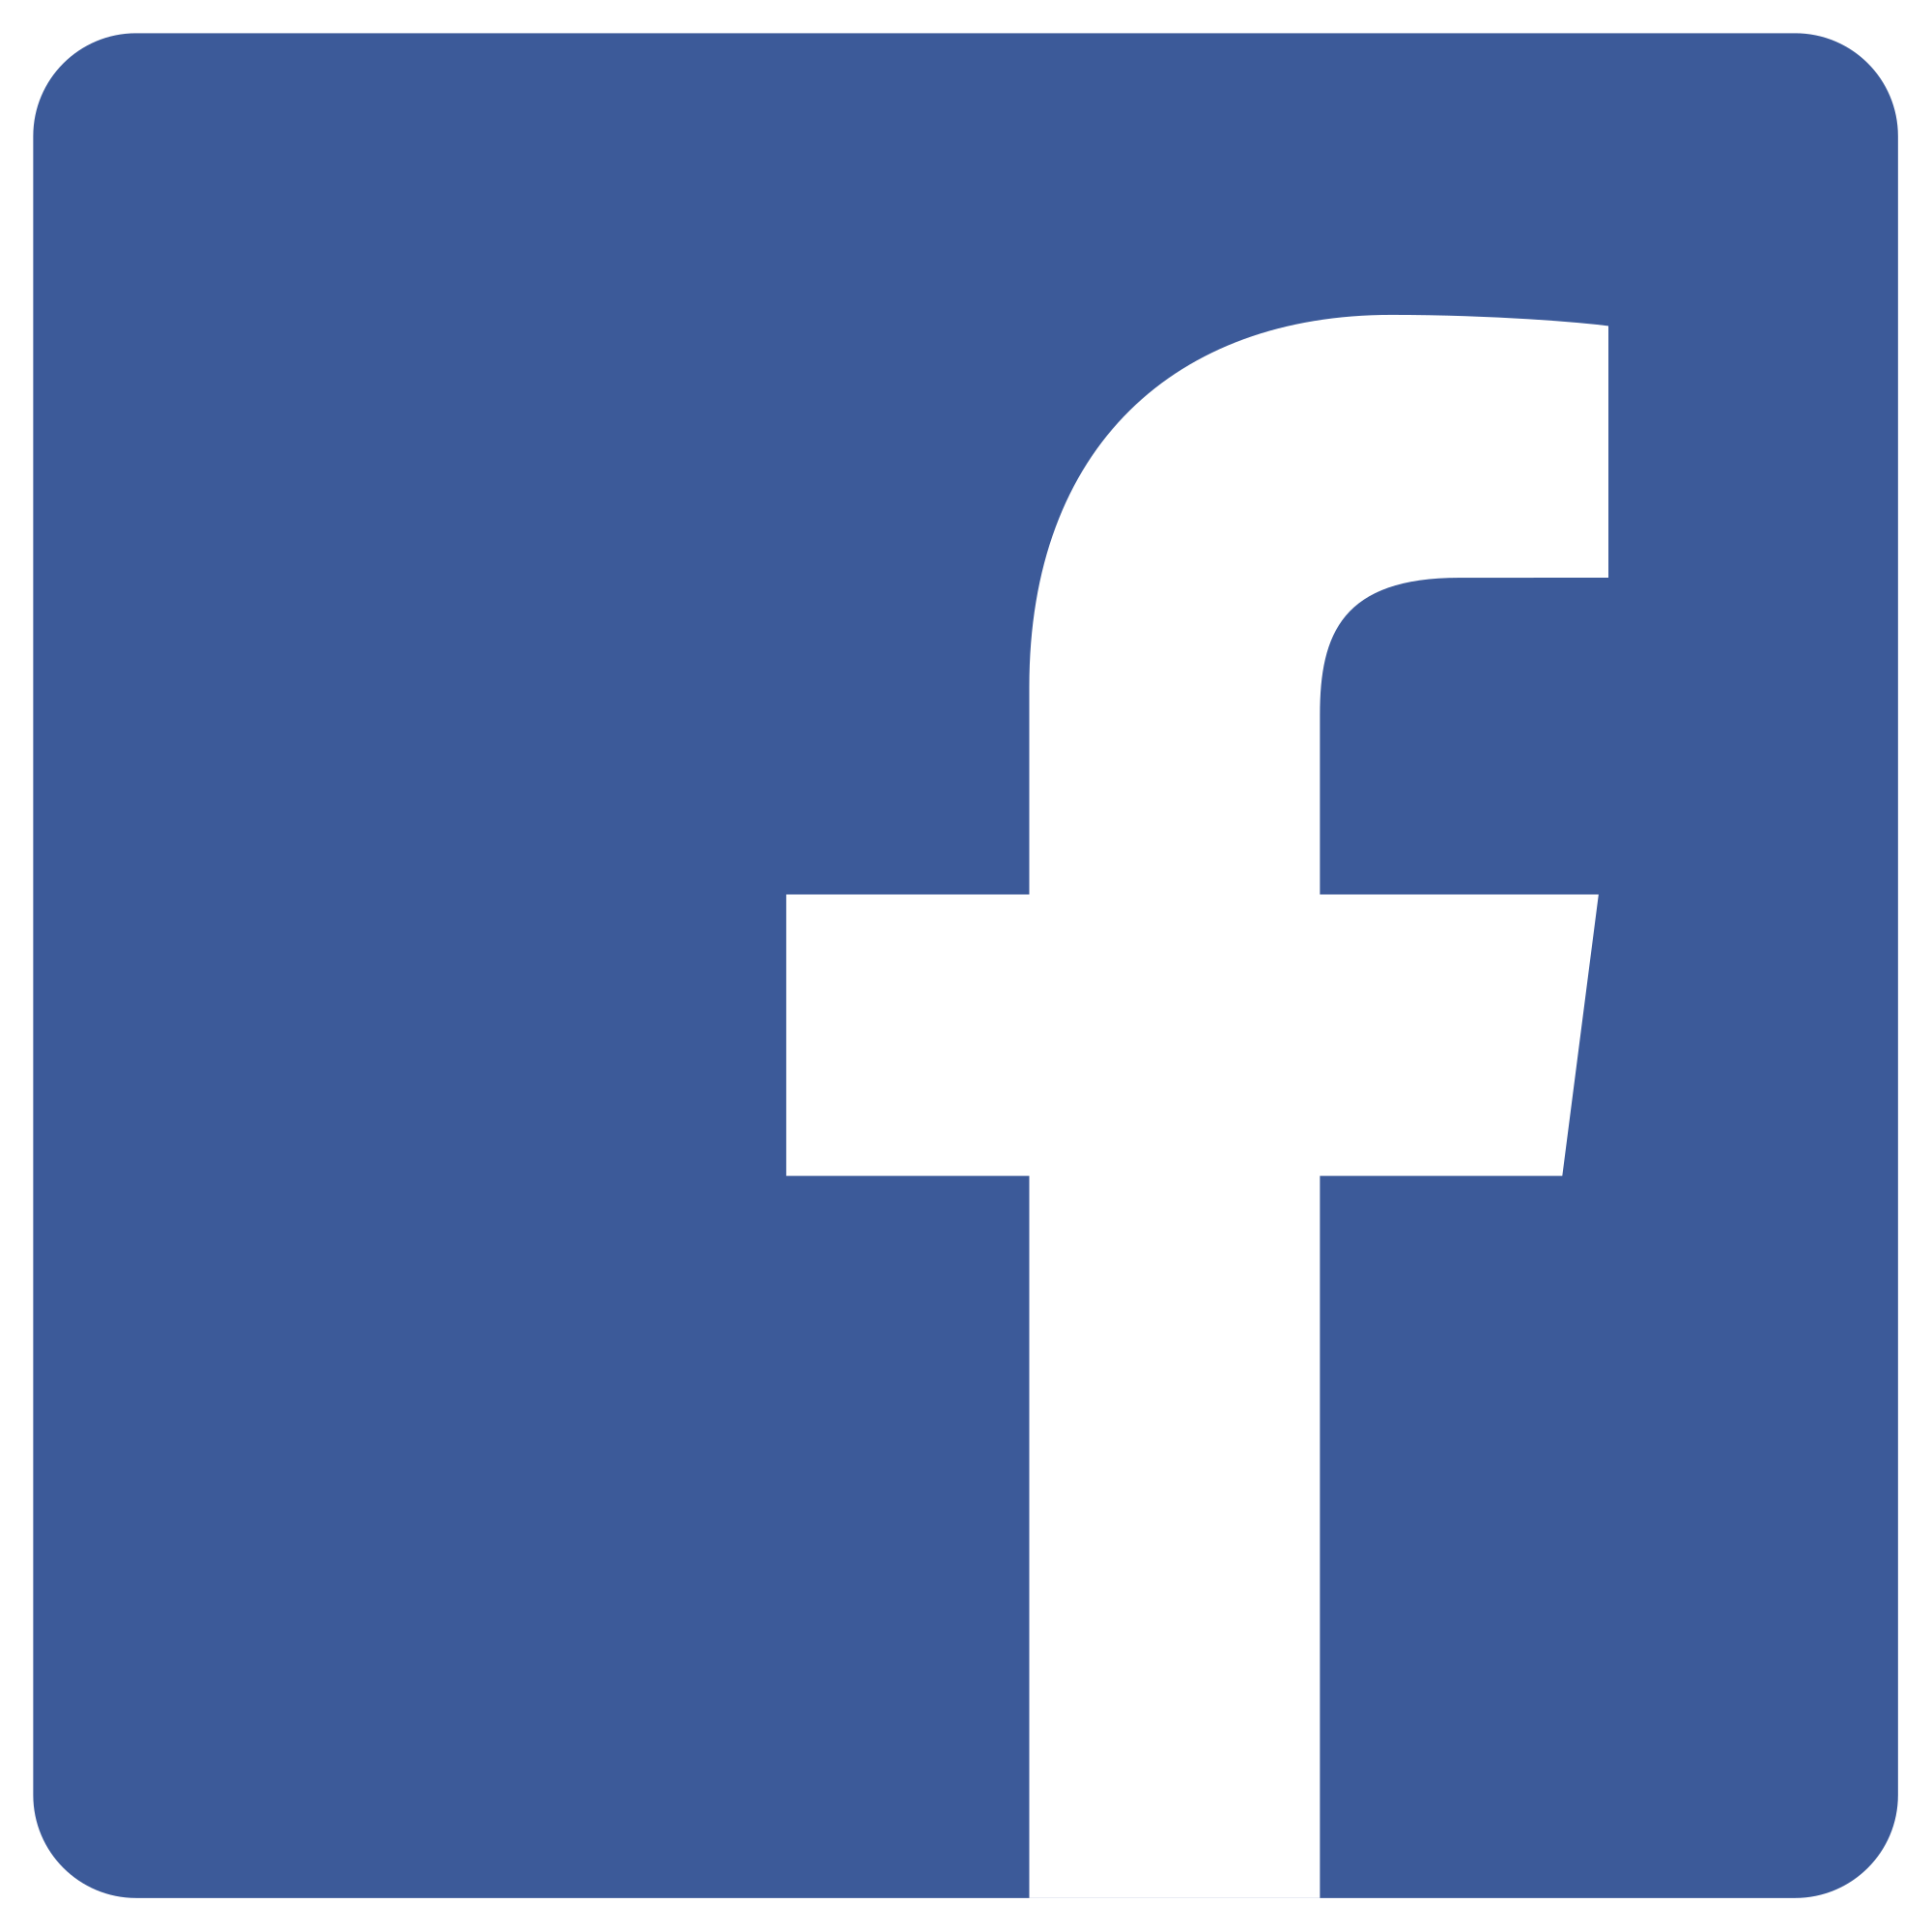 facebook manager tool step by step